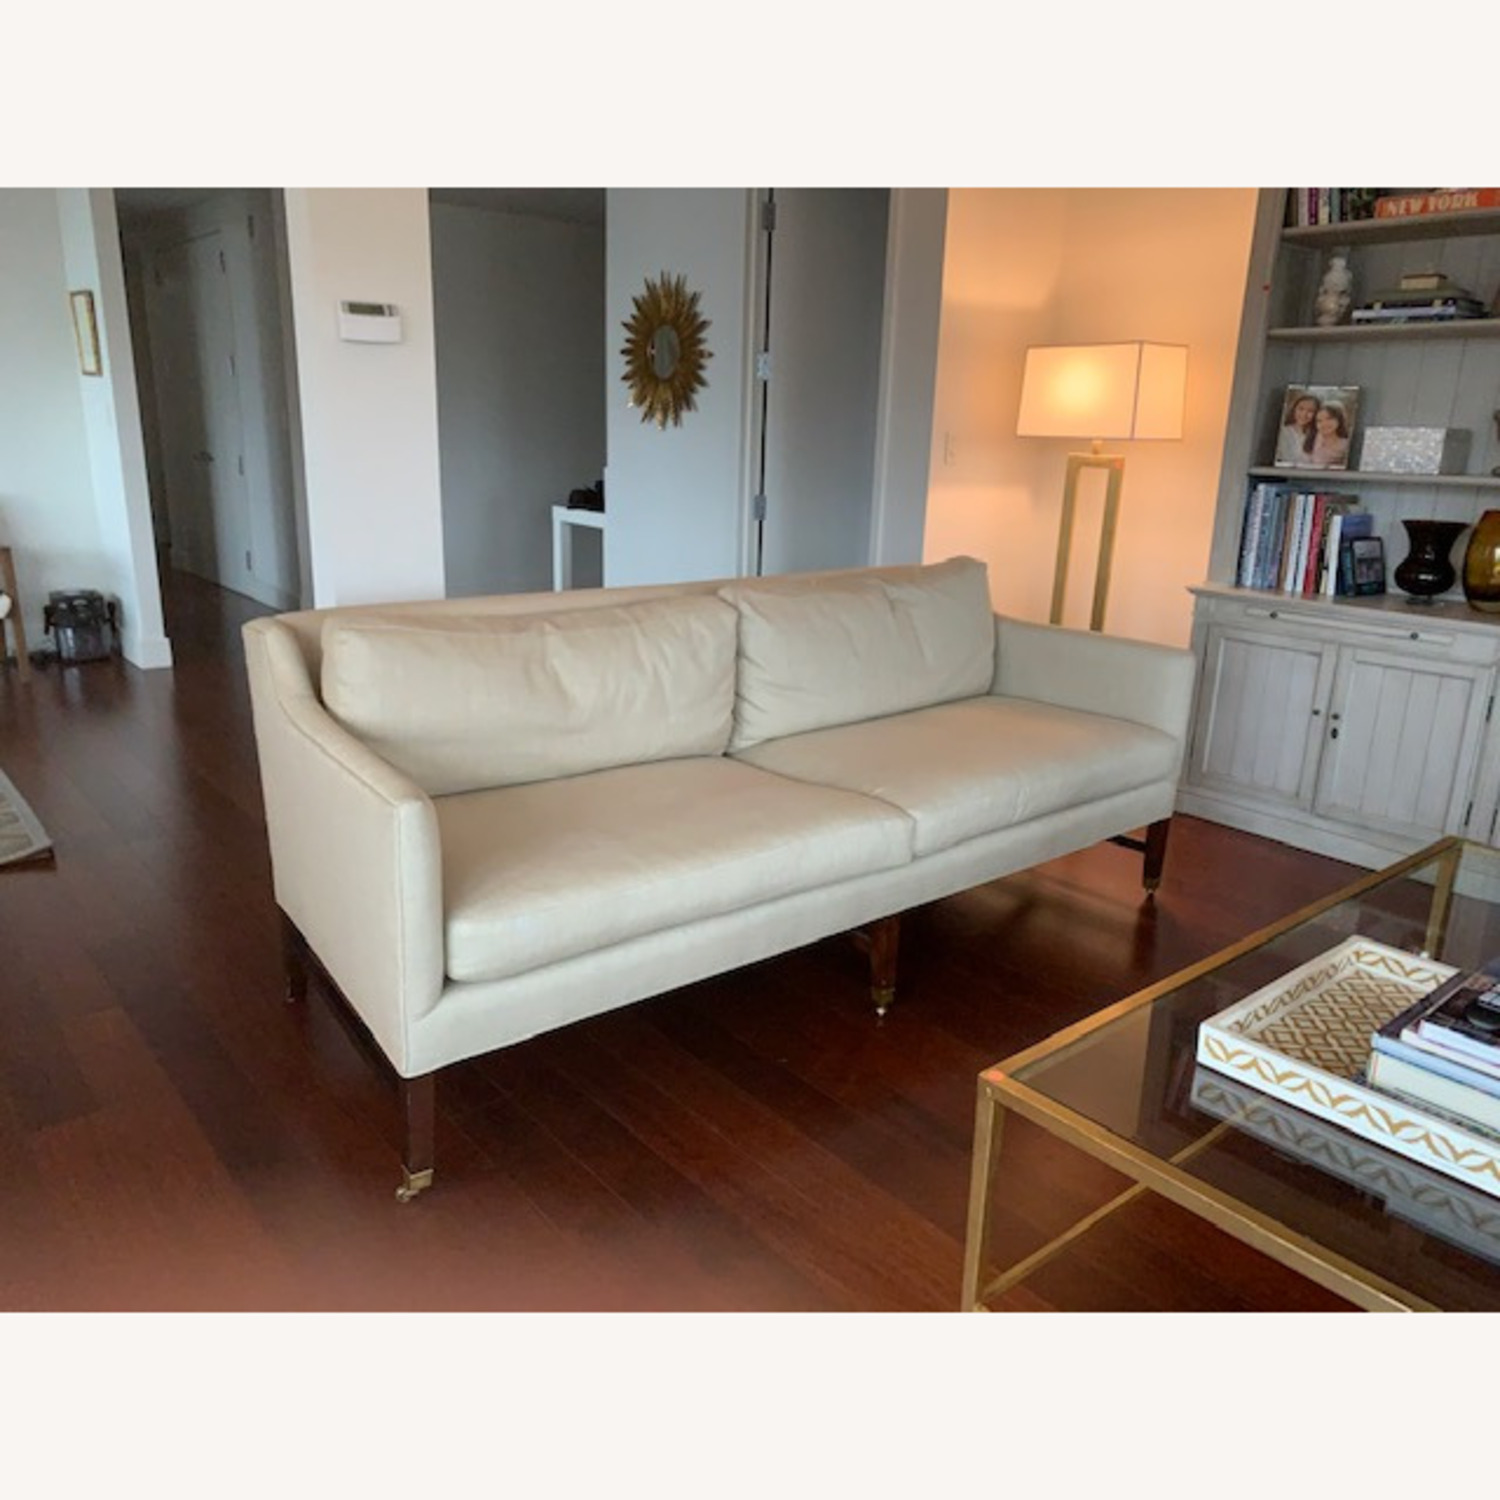 Lee Jofa Upholstered Sofas with Bronze Capped Legs - image-2